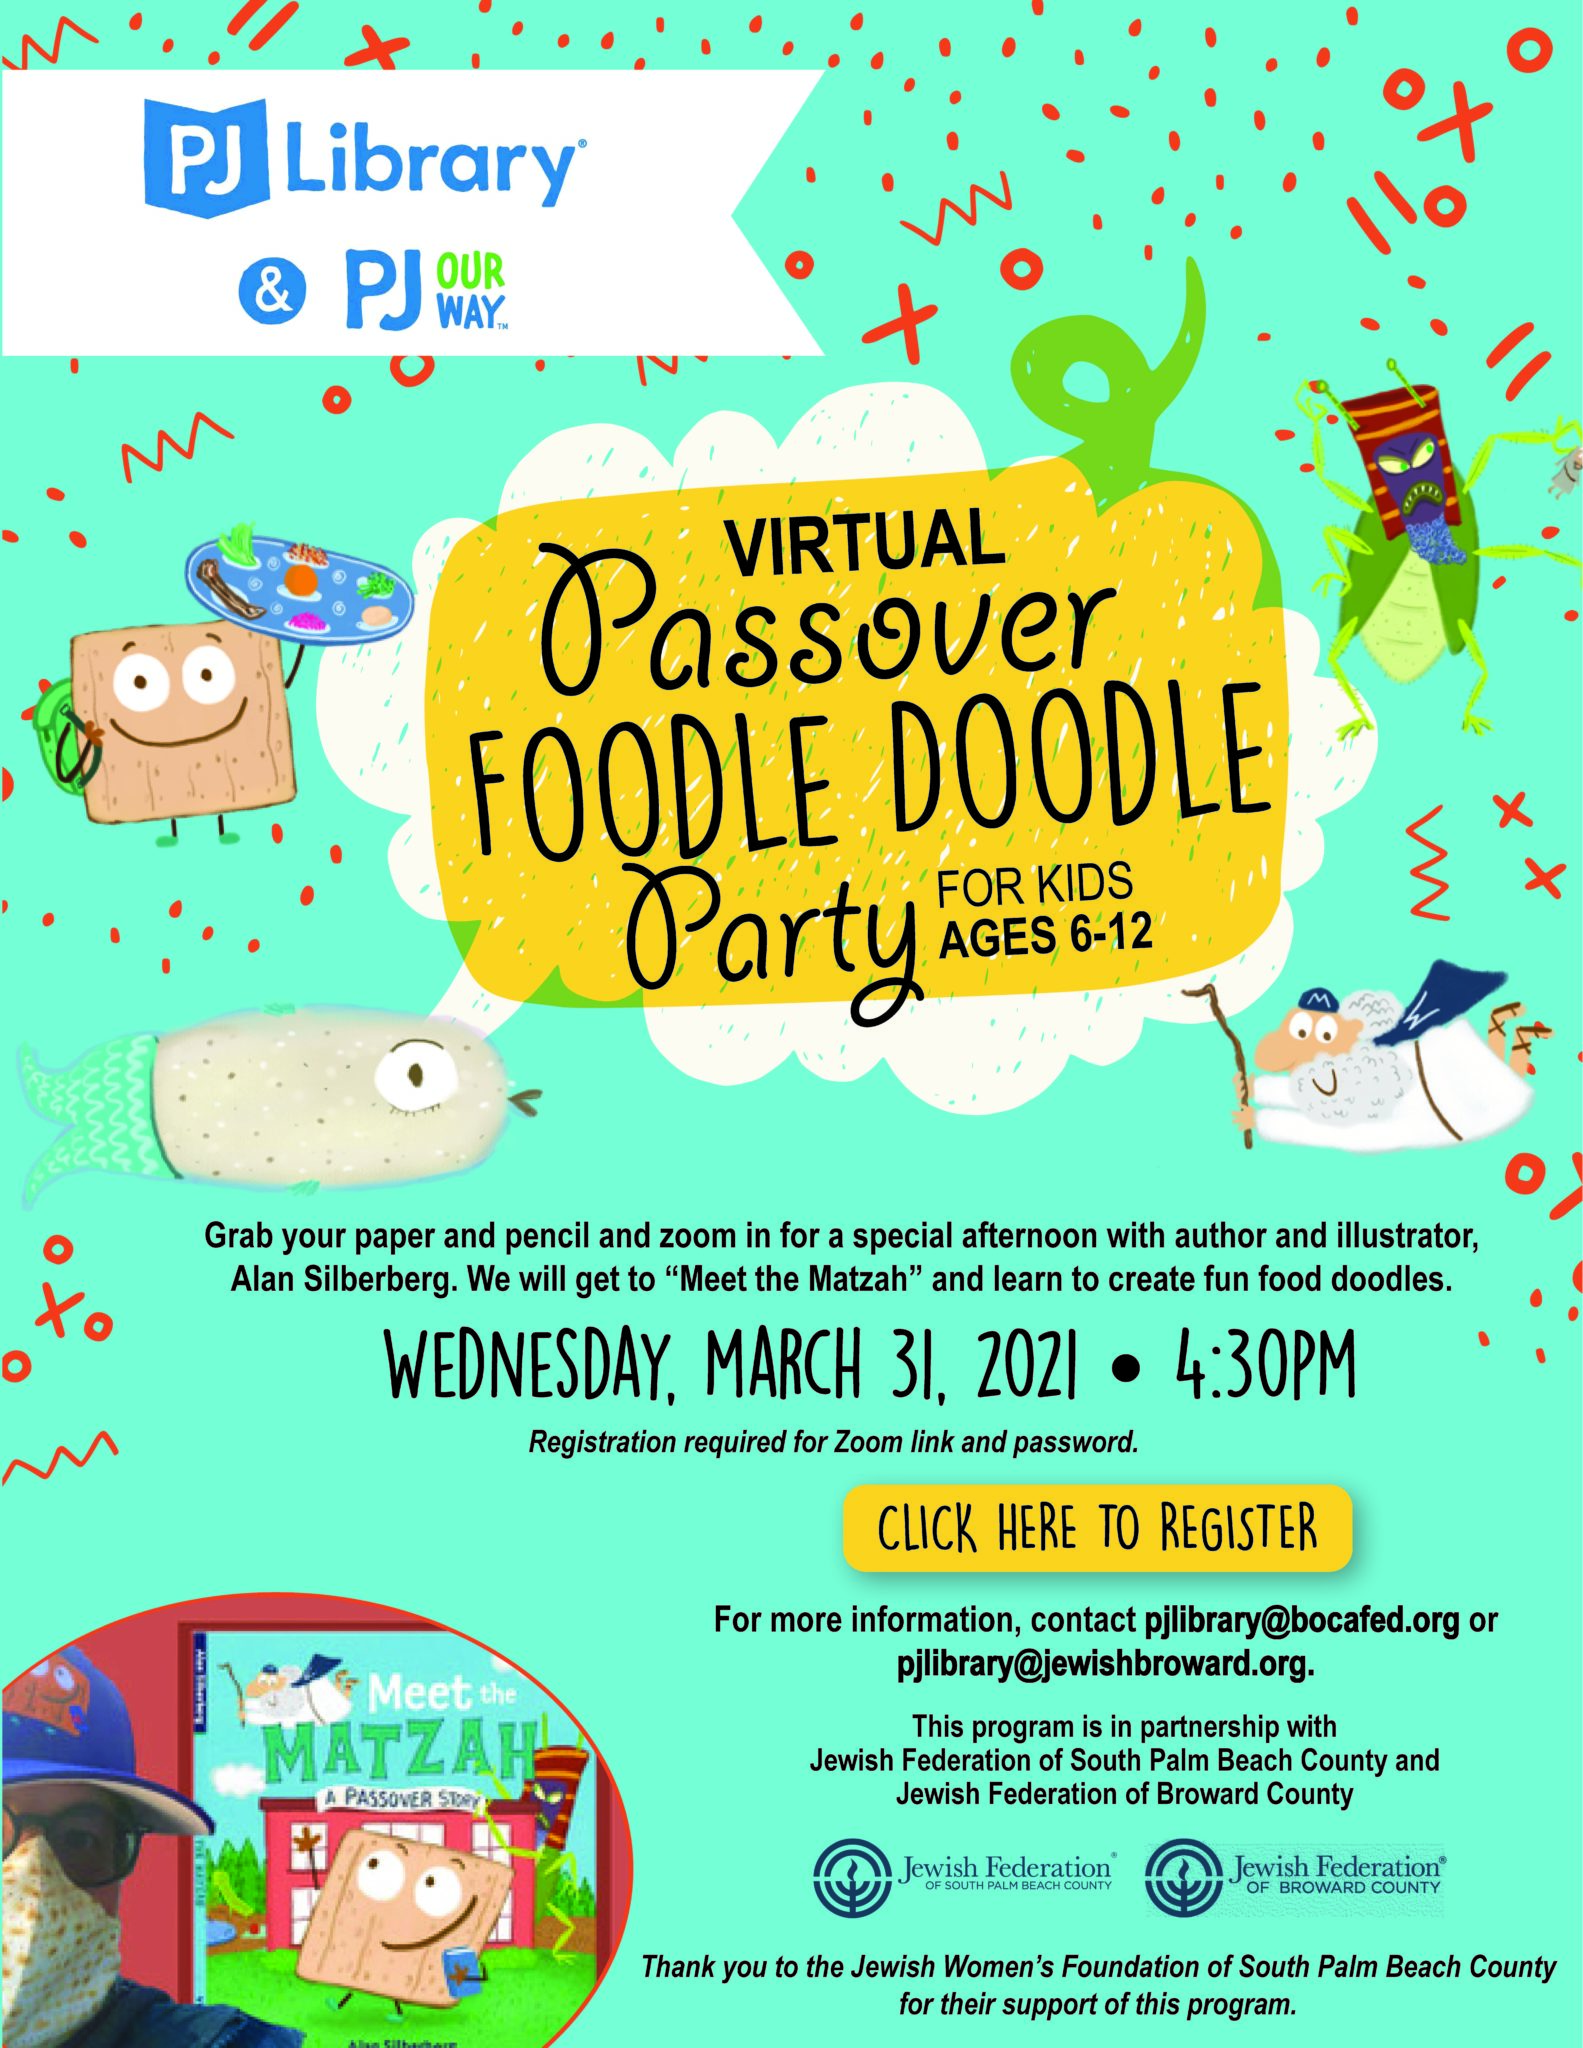 2021 PJ LIBRARY PASSOVER FOODLE DOODLE EVENT FLYER (002)